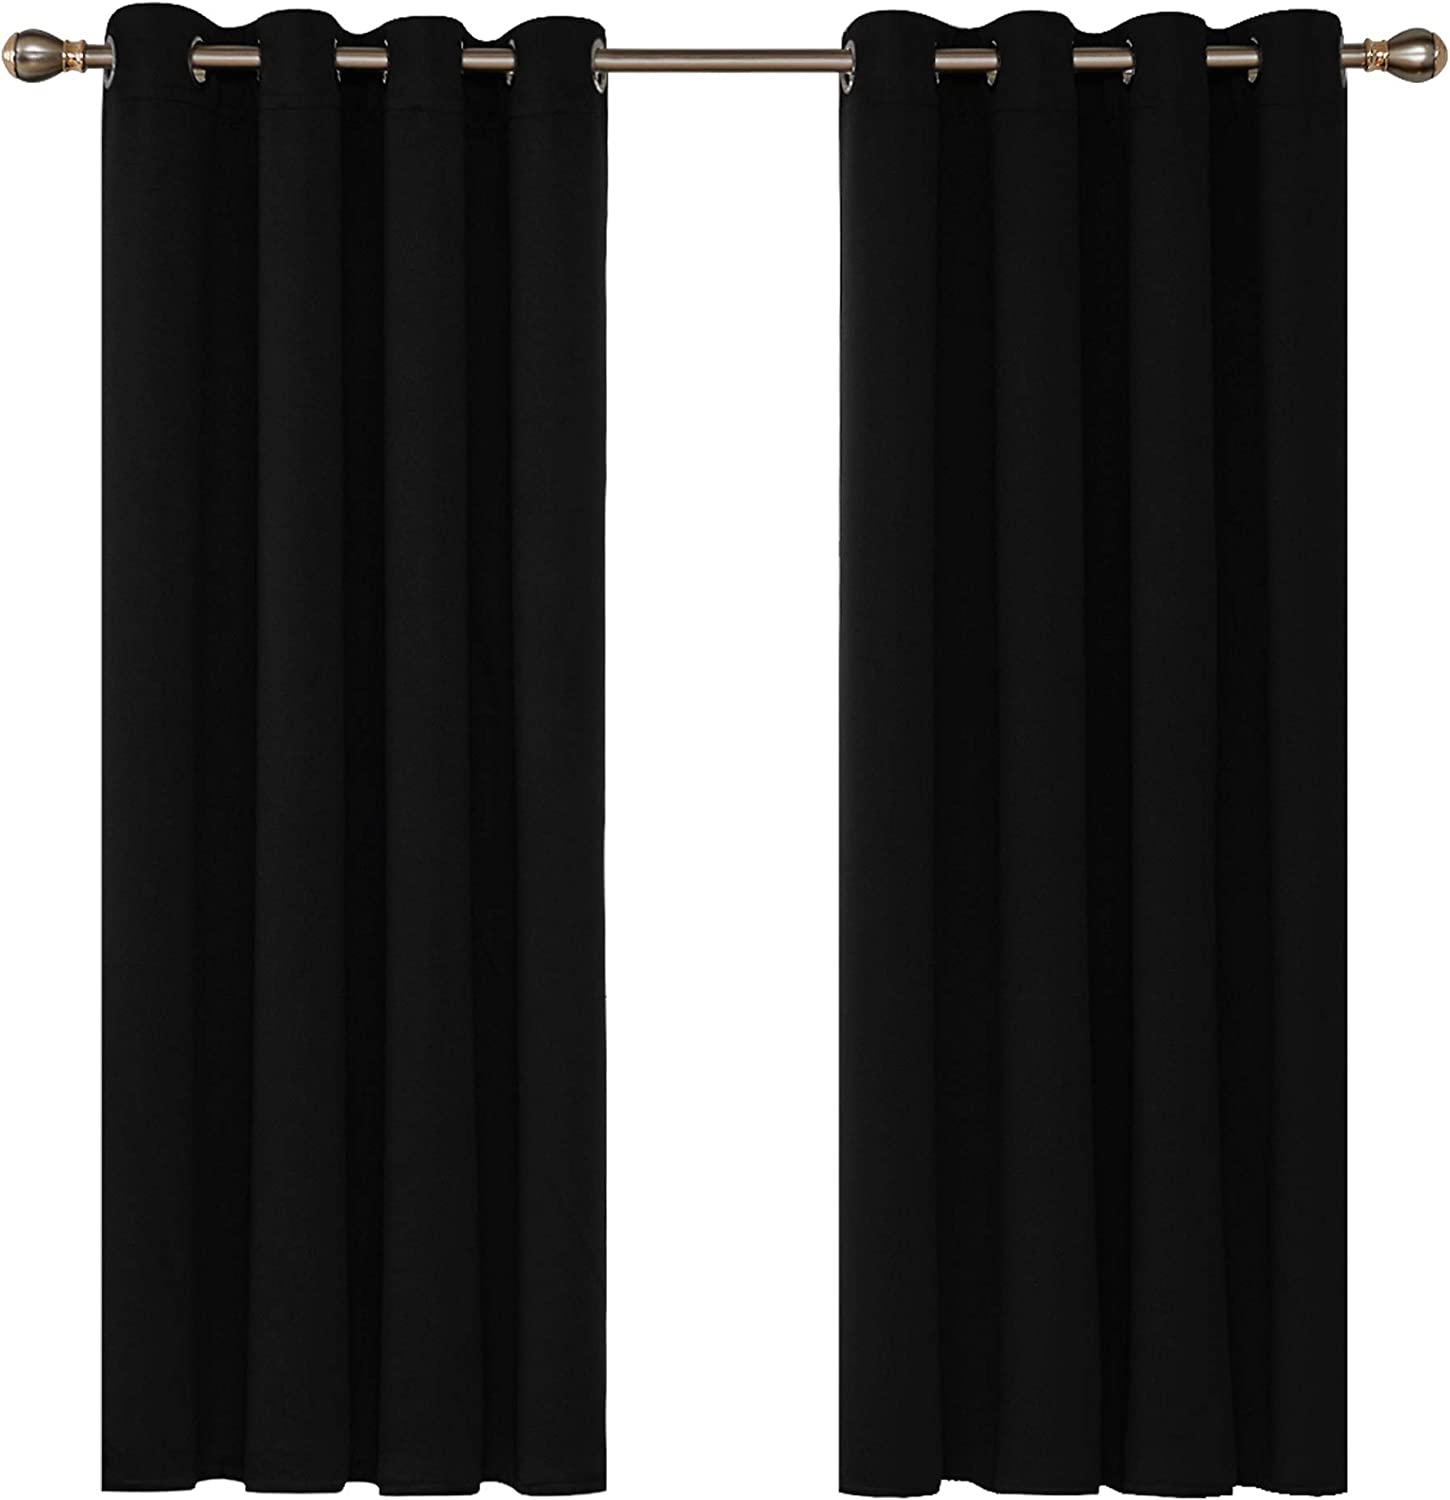 Deconovo Blackout Curtains Bedroom Super Soft Thermal Insulated Curtains Blackout Eyelet Blackout Curtains for Living Room 46 x 54 Inch Black 2 Panels W46 x L54 Black